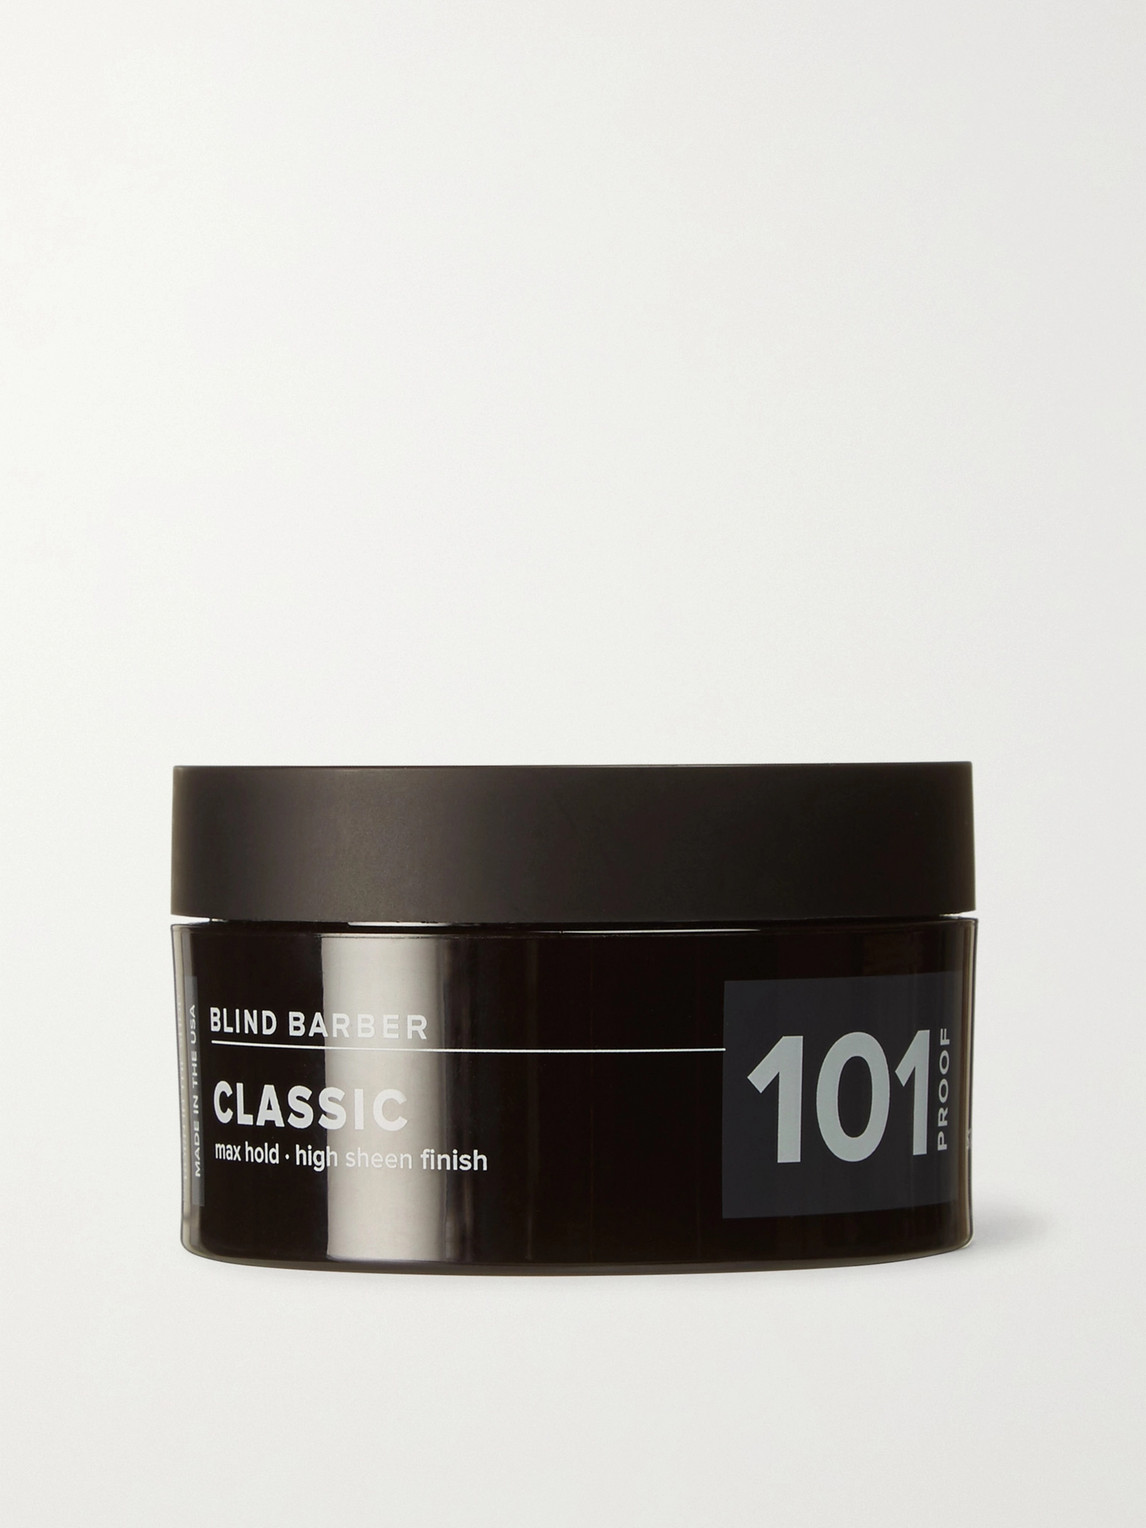 Blind Barber 101 Proof Classic Pomade, 2.5-oz. In Colorless